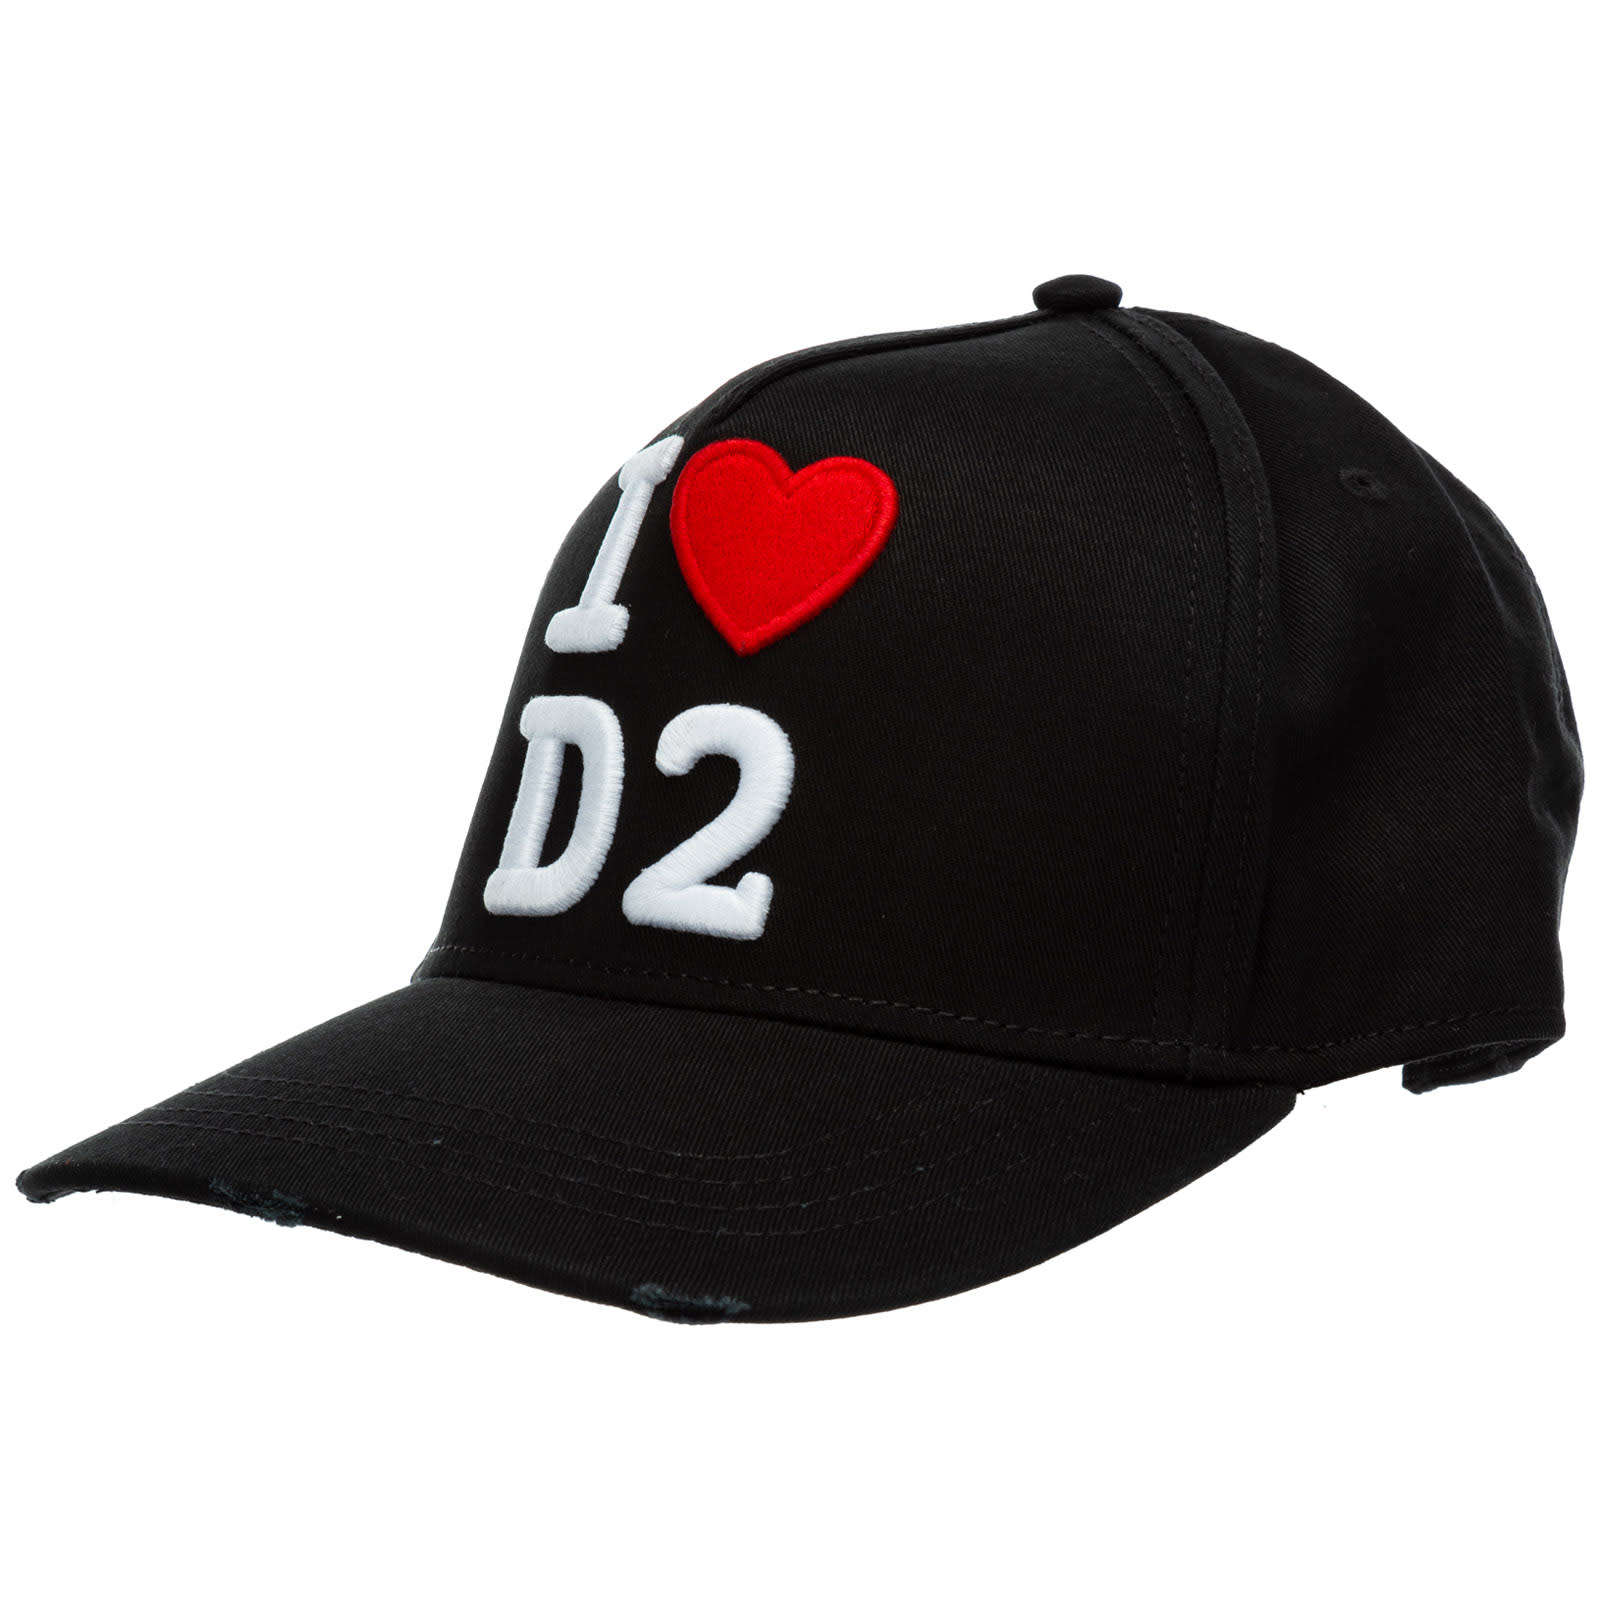 Dsquared2 Caps I LOVE D2 BASEBALL CAP